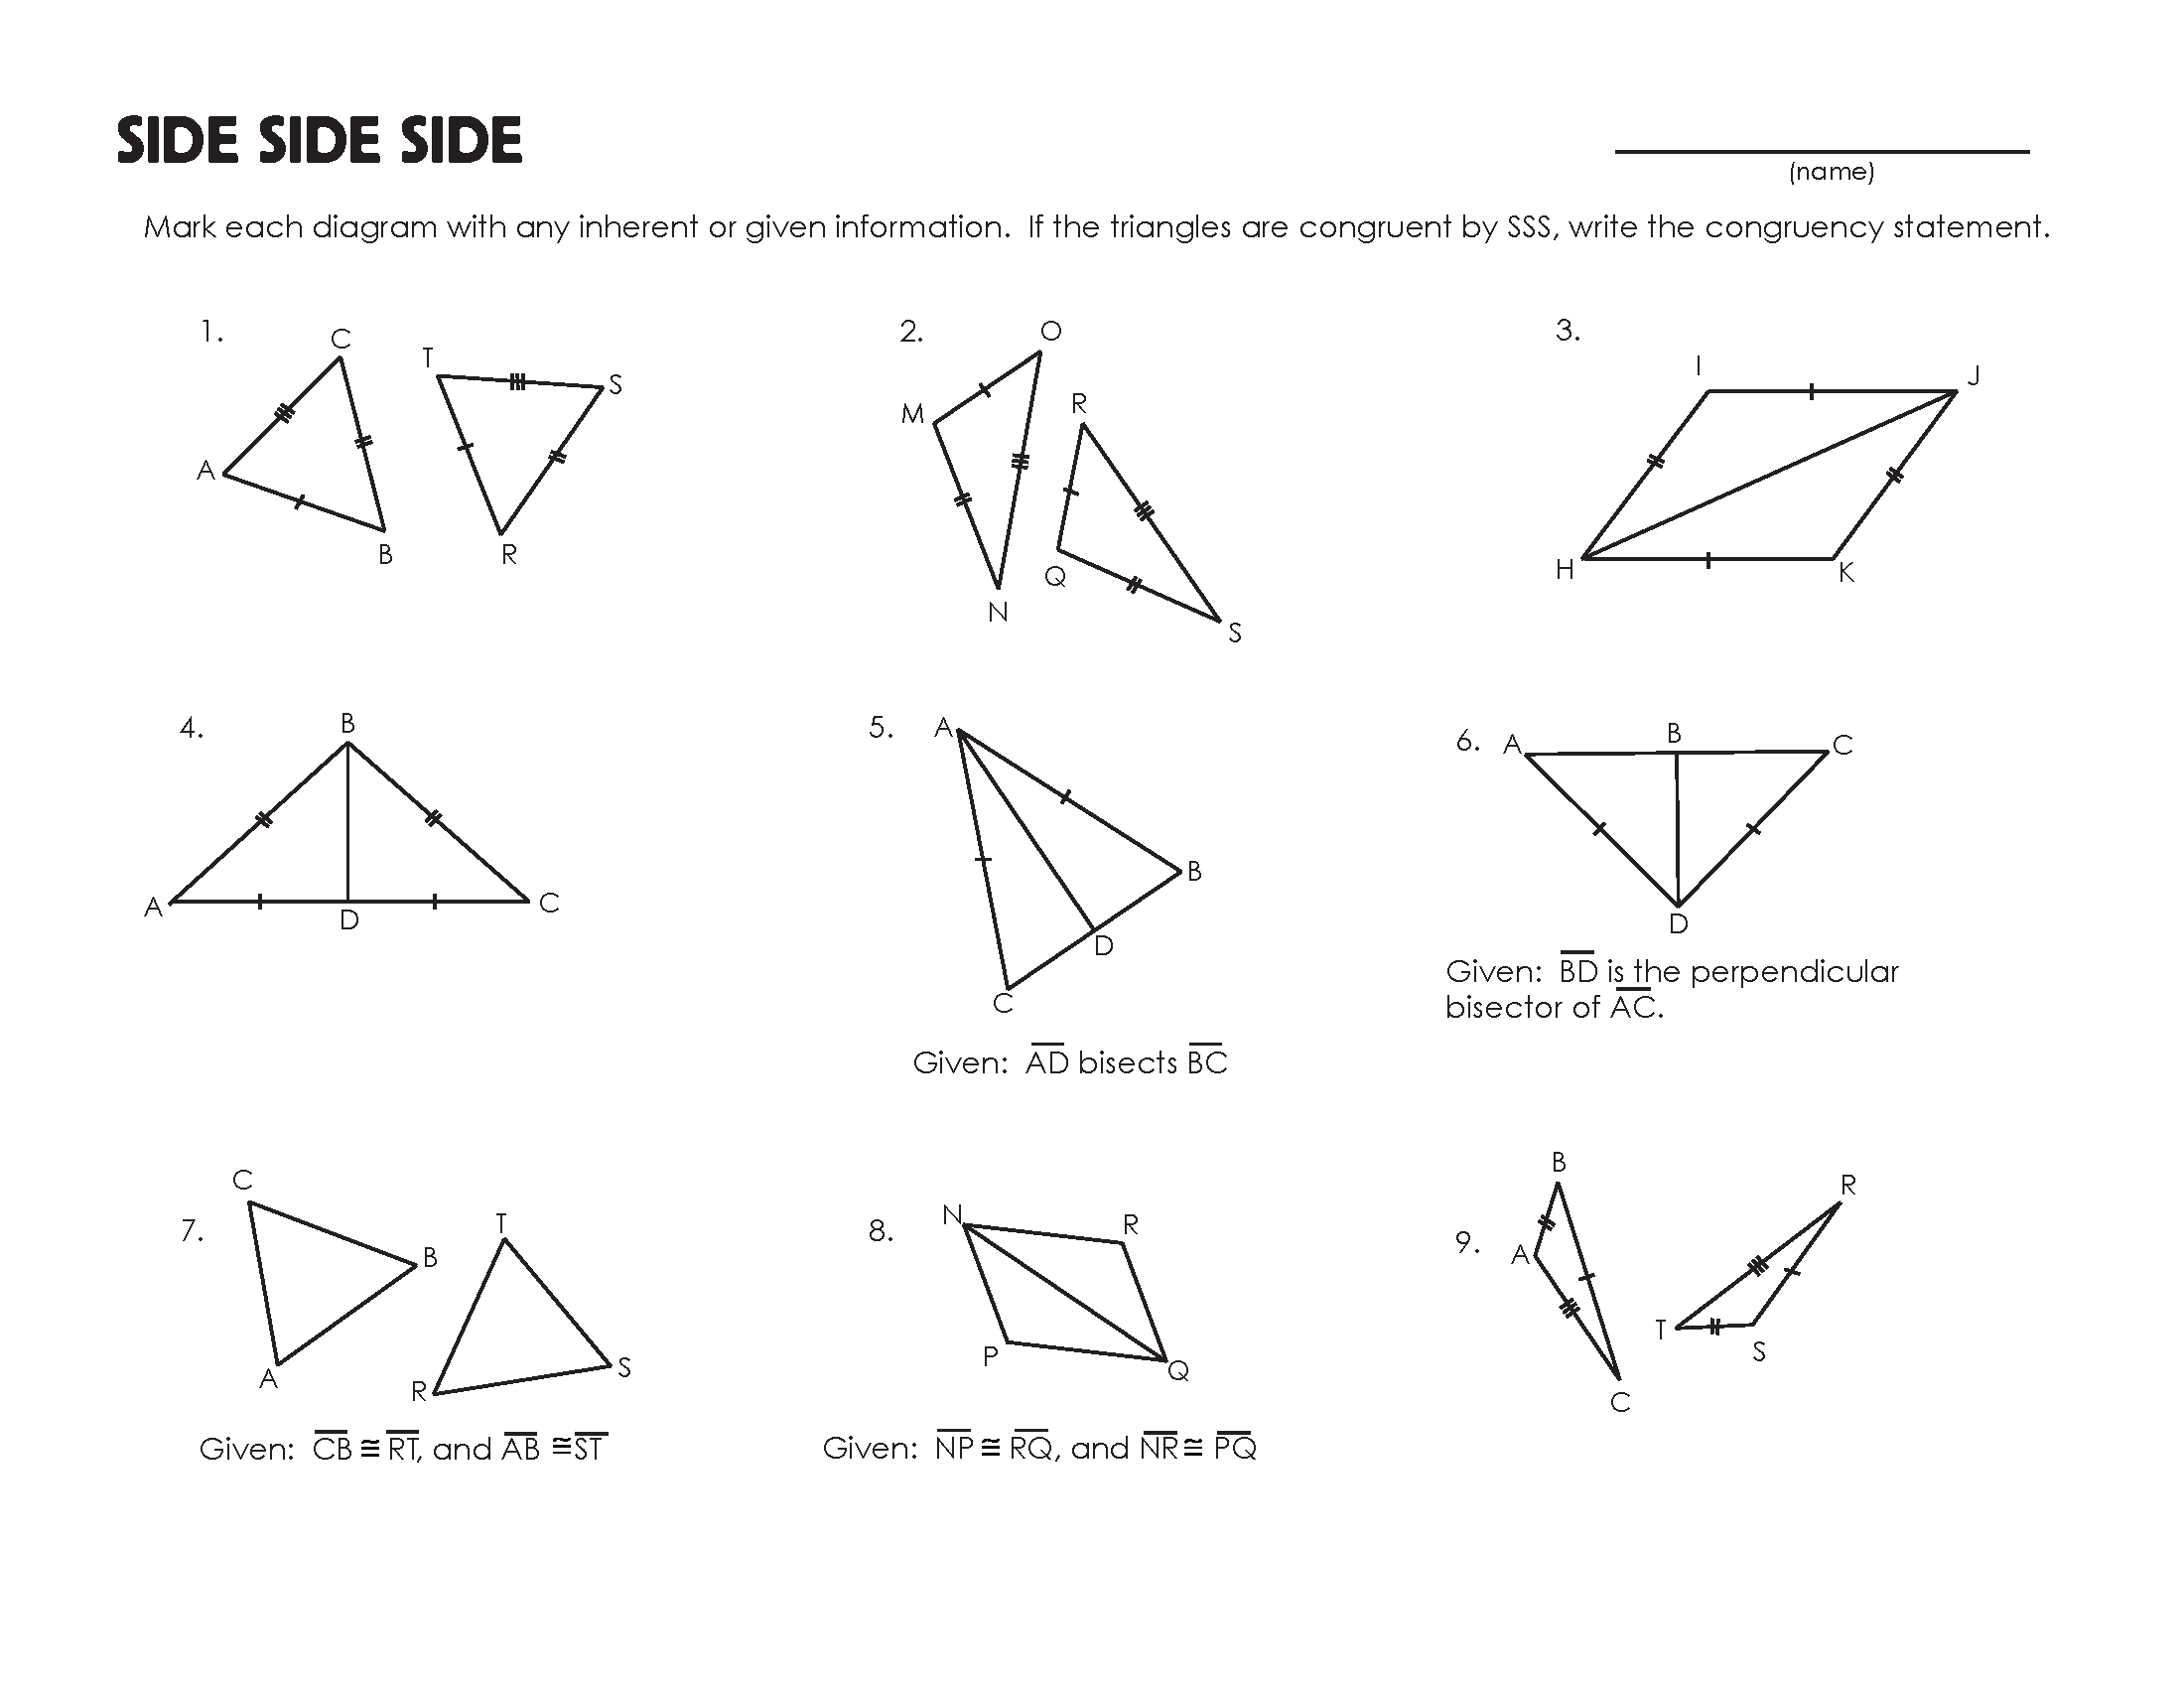 Worksheets Congruent Triangles Worksheet congruent triangles worksheet activities and worksheets activity mrmillermath